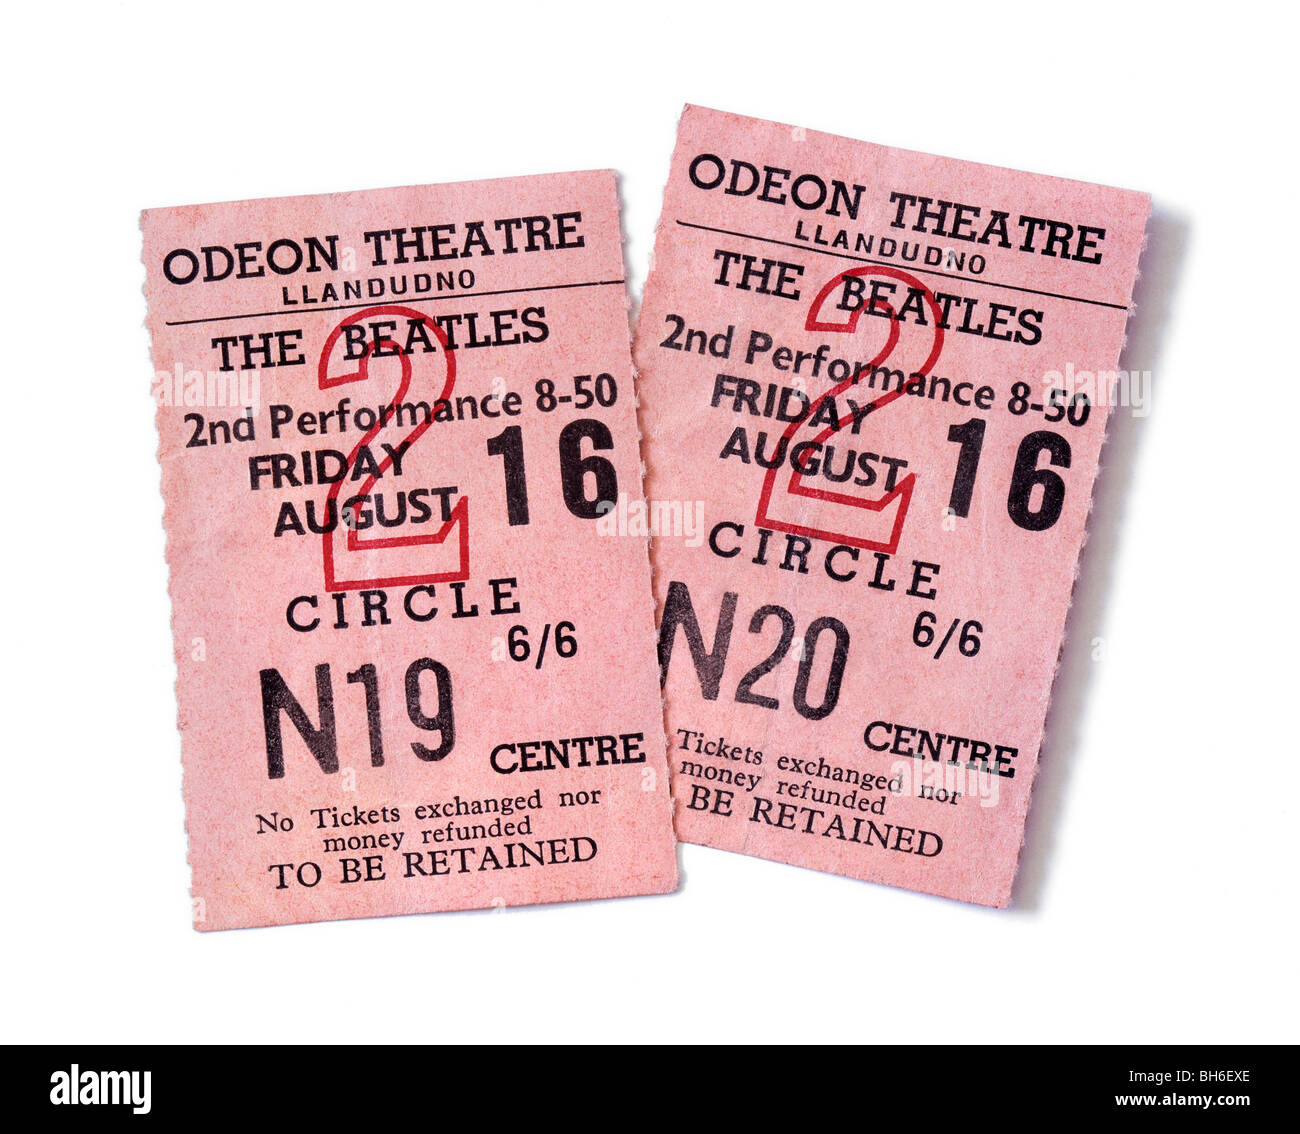 Tickets for a Beatles gig at the Odeon Theatre, Llandudno, North Wales, 16 August 1963 - Stock Image